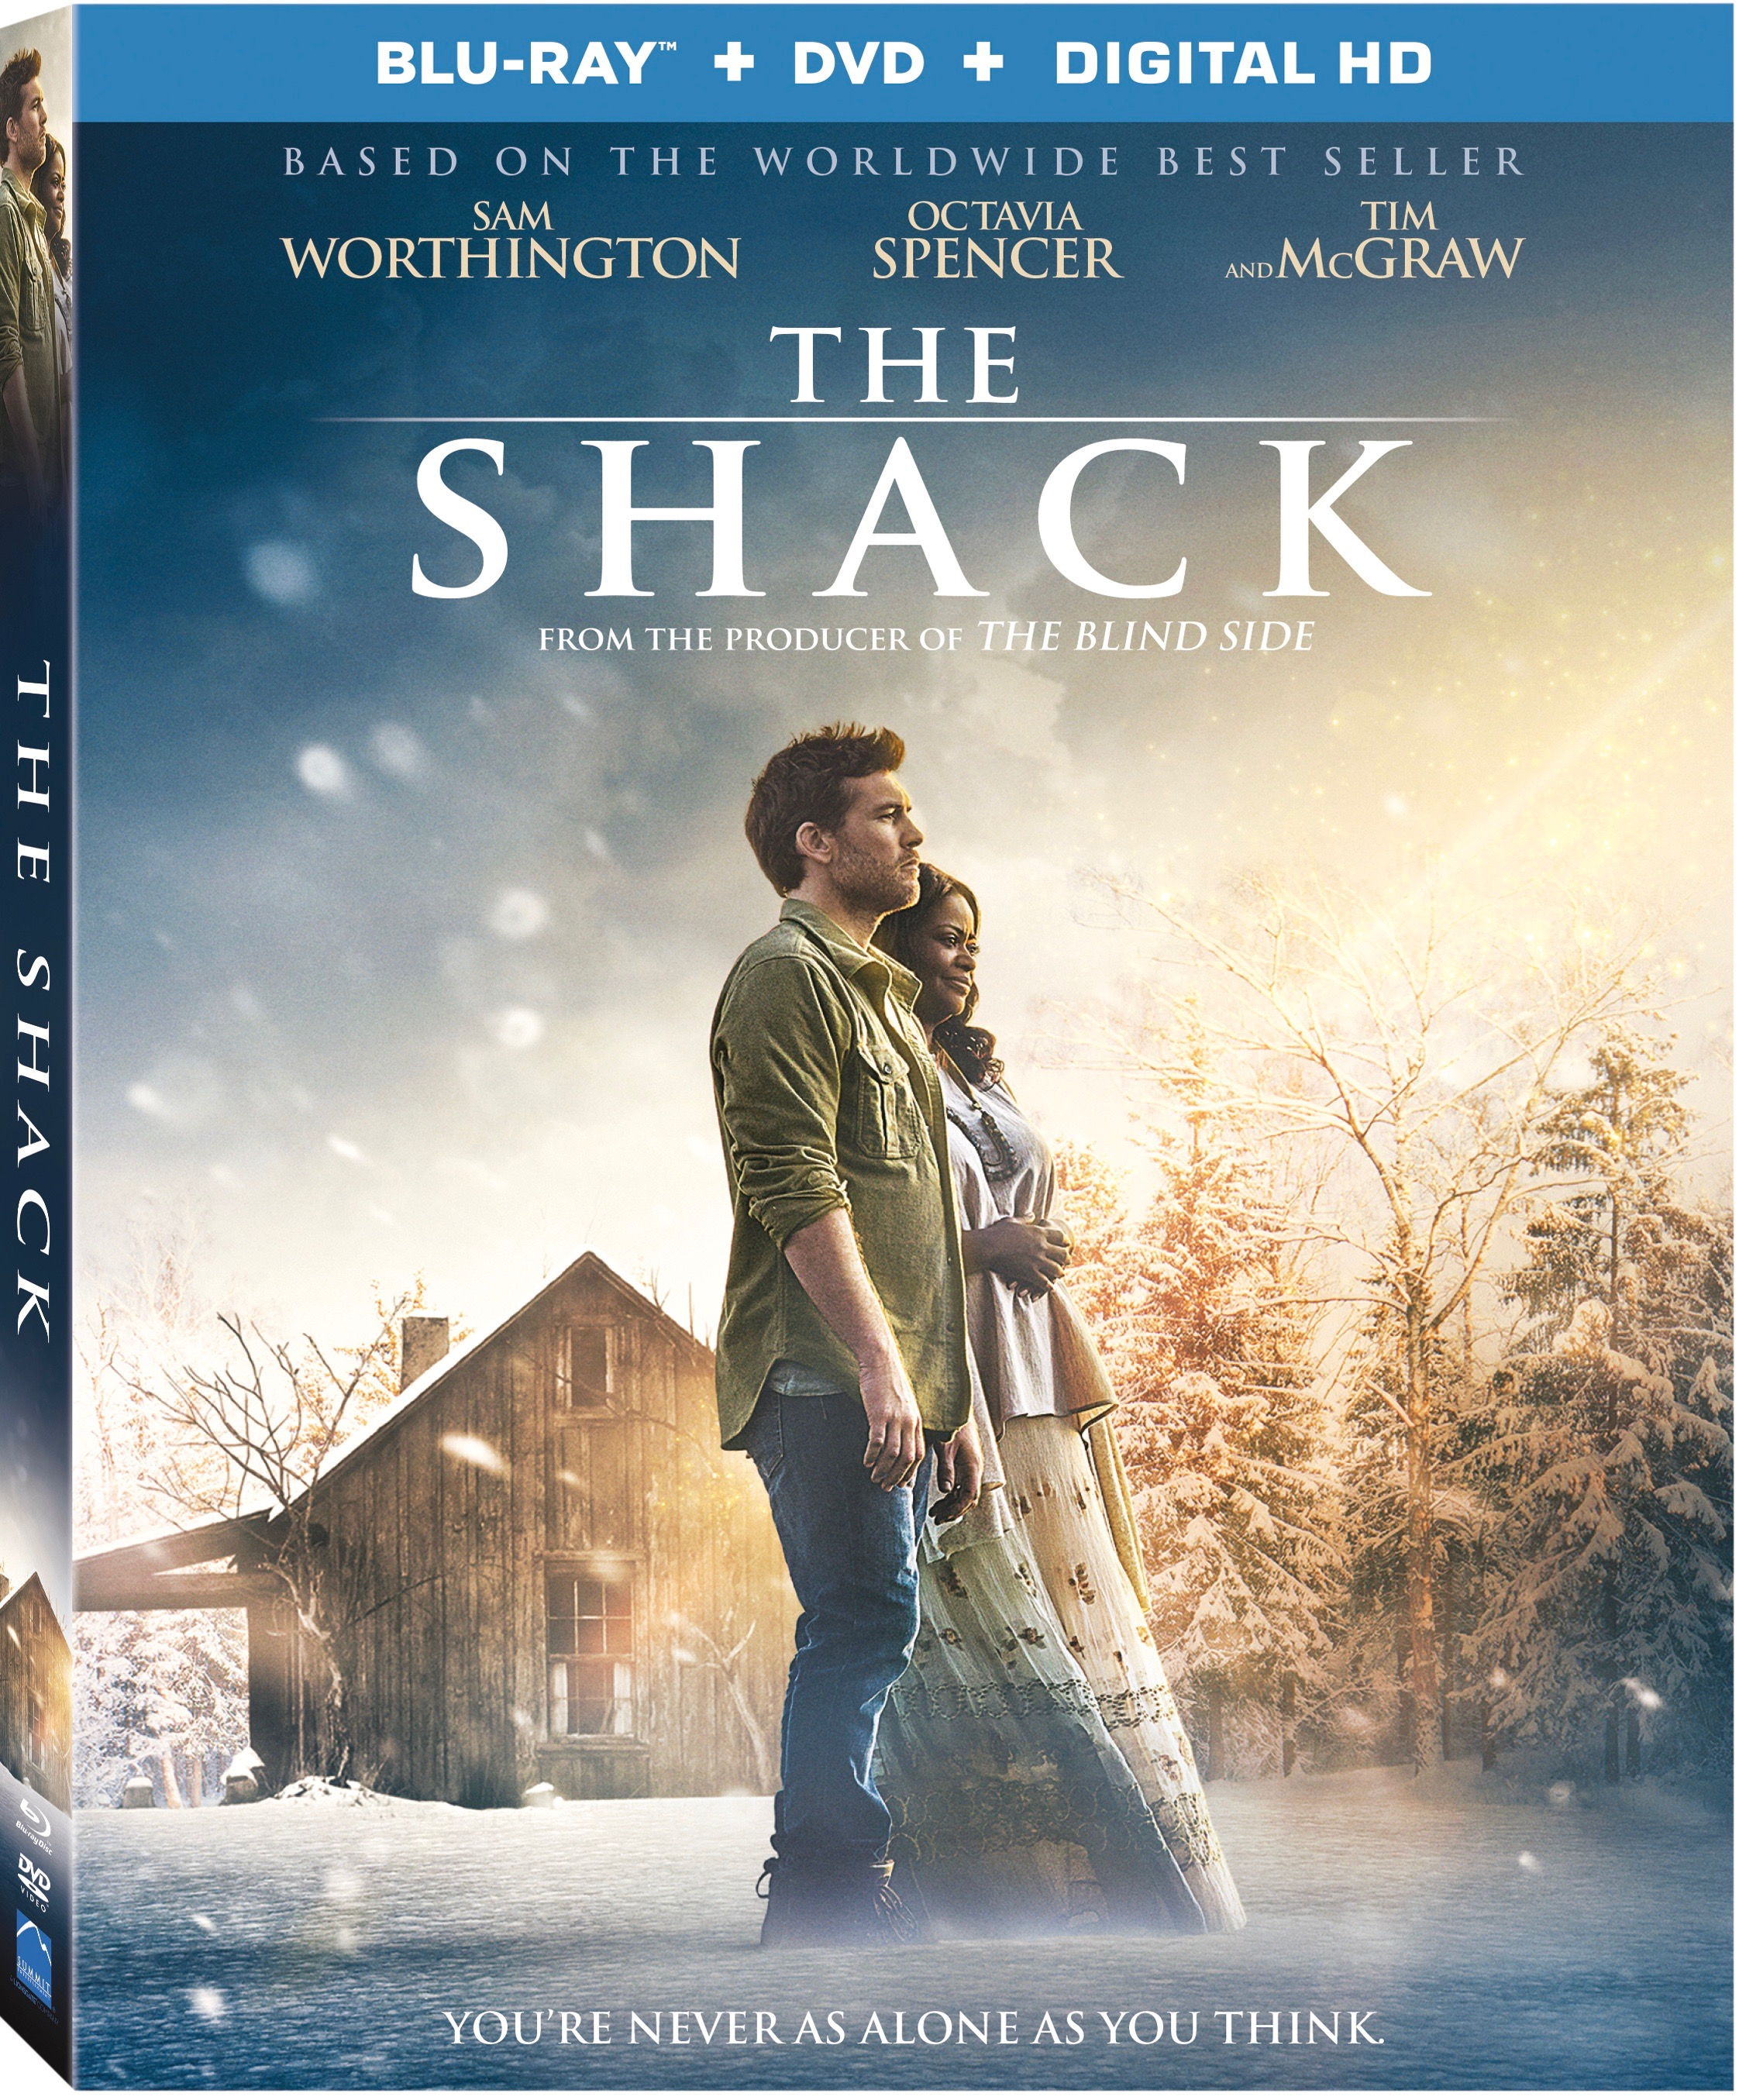 The Shack, author William P. Young, Radha Mitchell